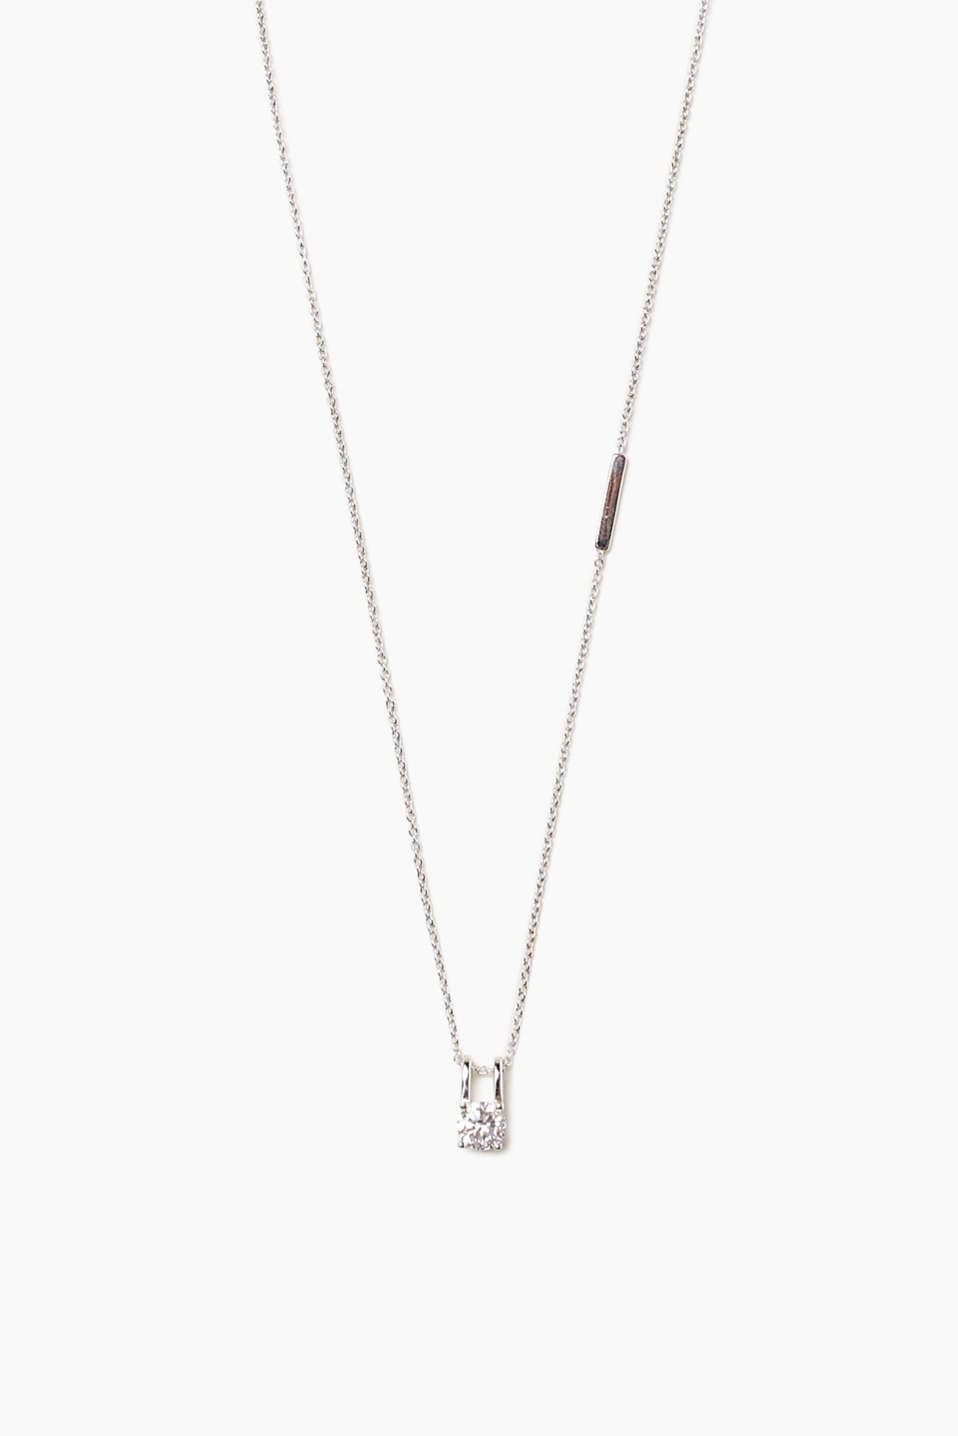 Esprit - Fine silver necklace with a zirconia pendant